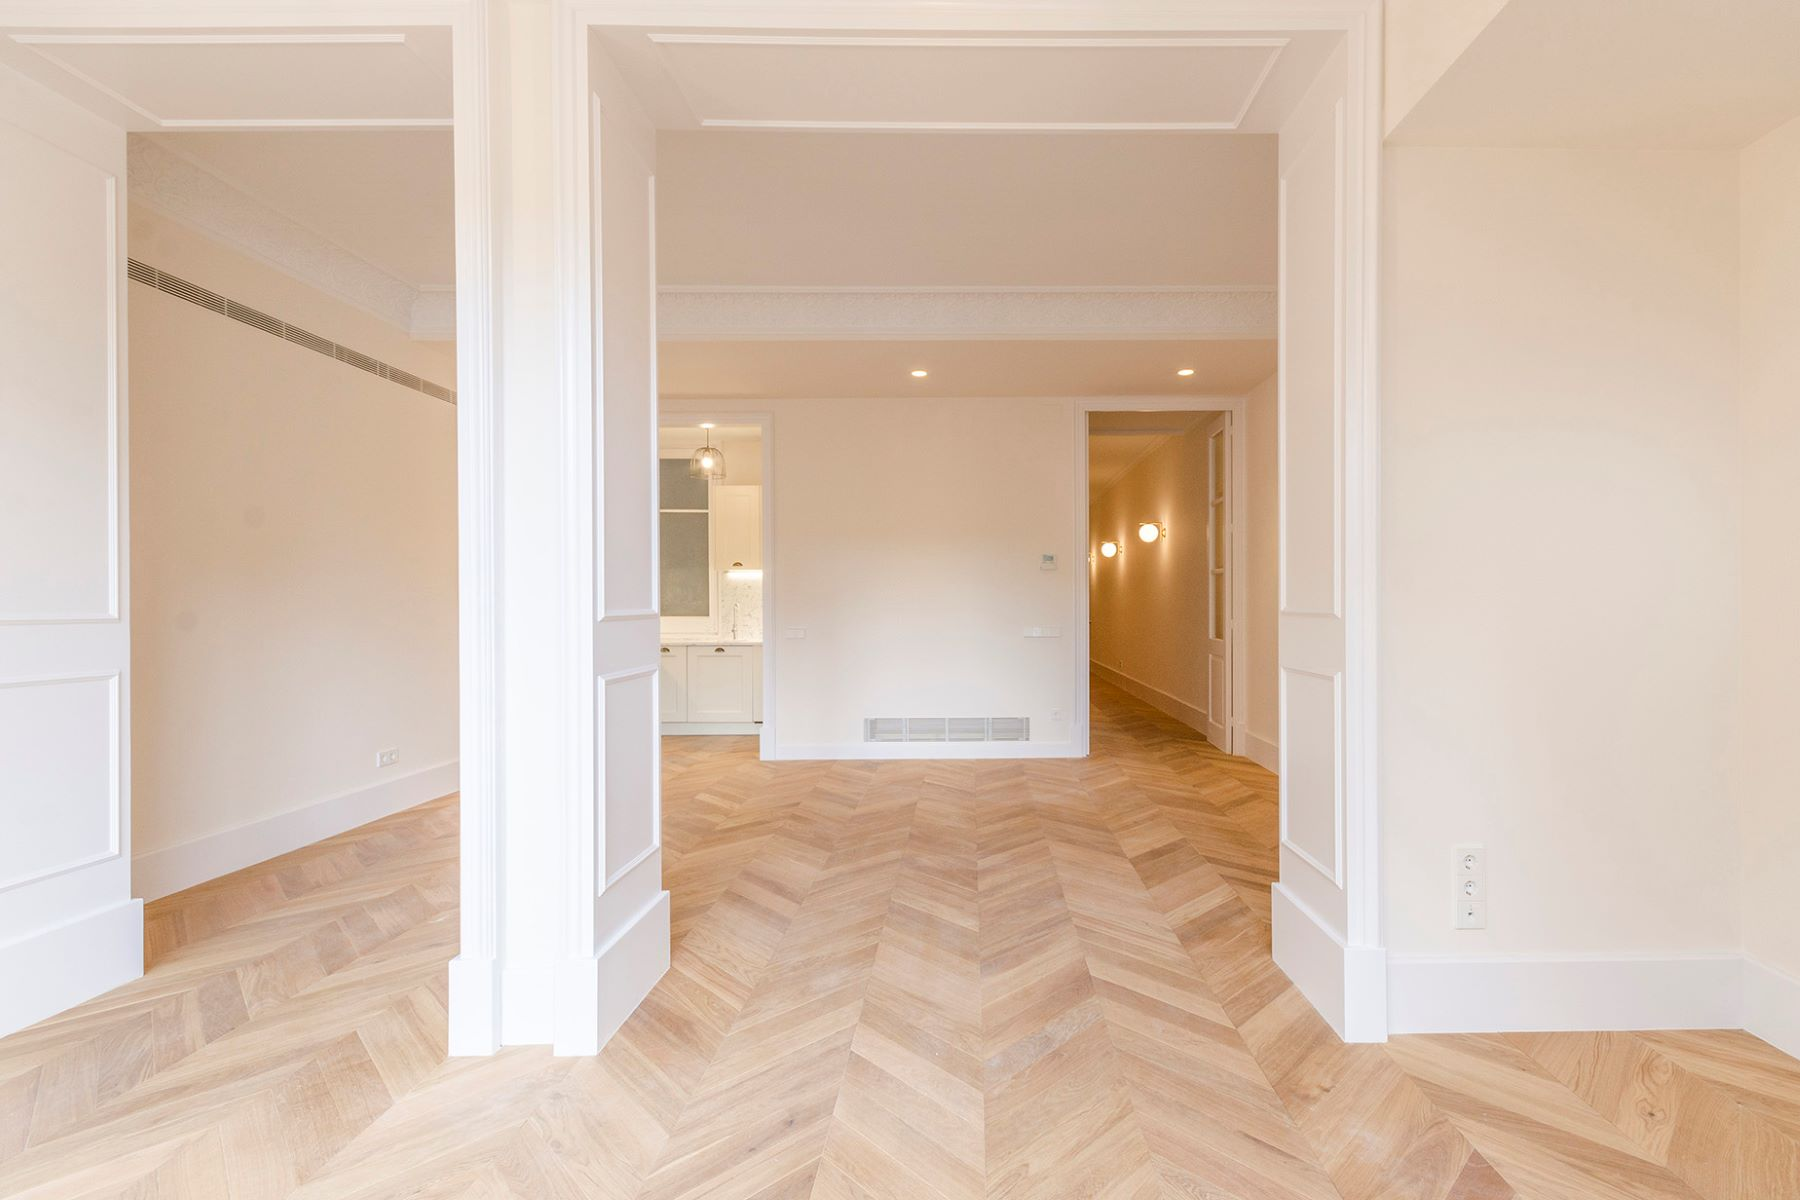 Apartment for Sale at Great opportunity in the Eixample Derecho Barcelona City, Barcelona, 08007 Spain